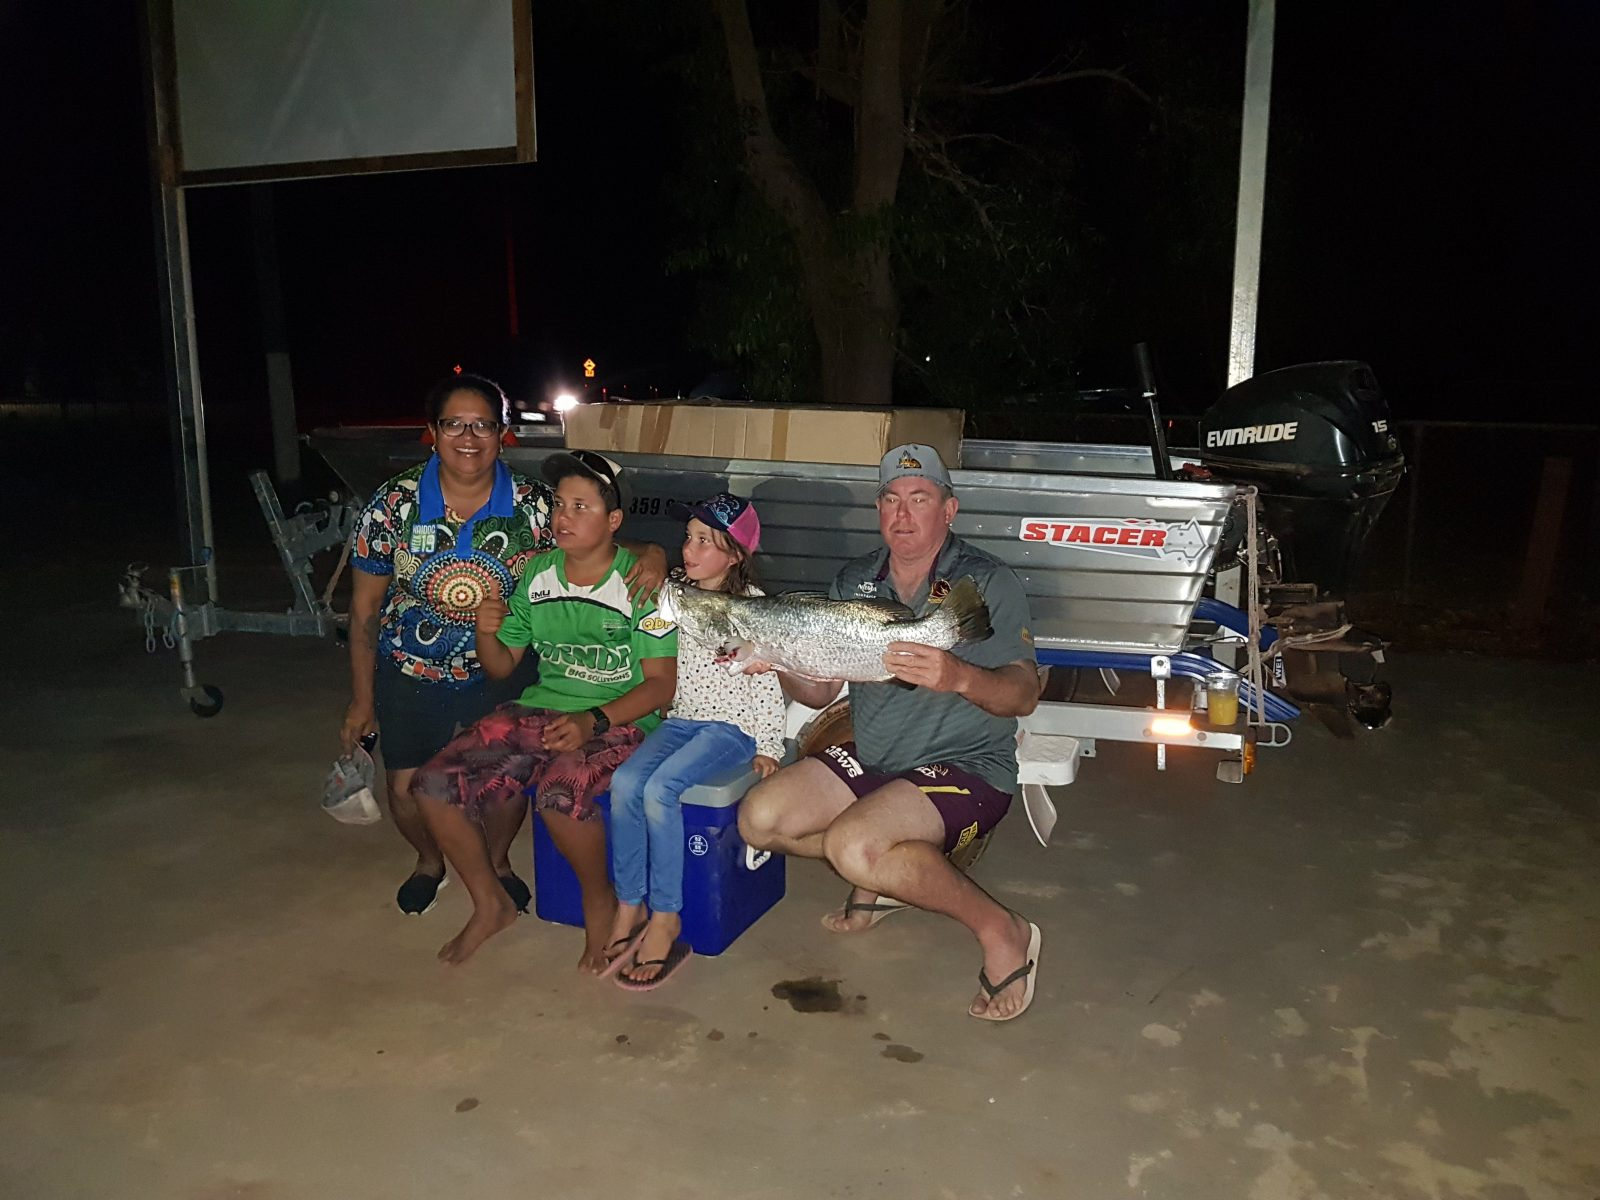 Winning family showing parents and two children with barramundi after weigh-in in the evening